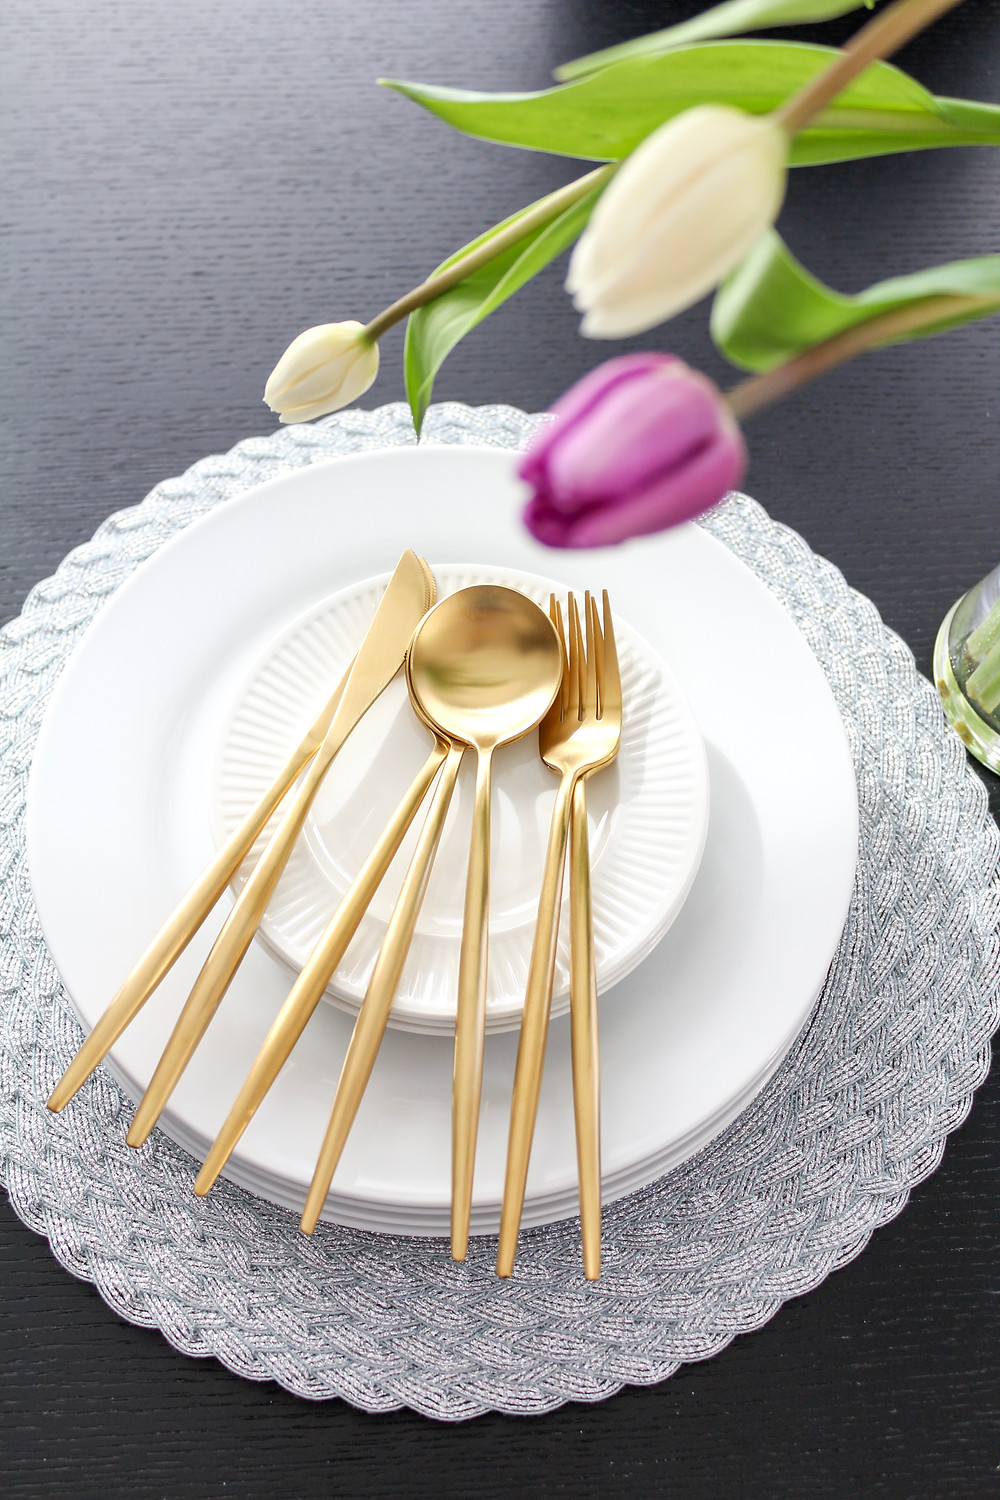 3 things for a modern easter table setting. #eastertable #eastertablesetting #springtable #moderneaster